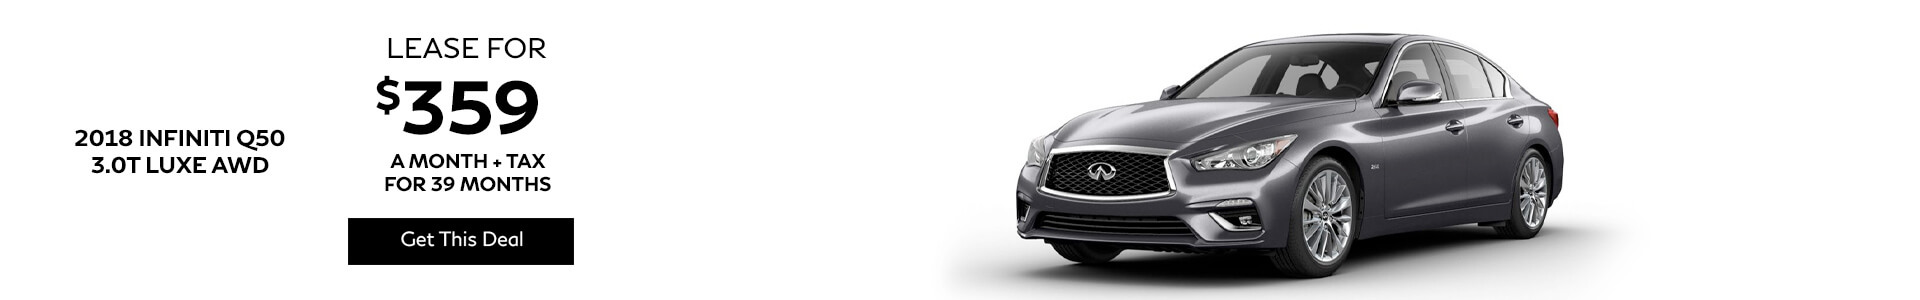 2018 Q50 - Lease for $359